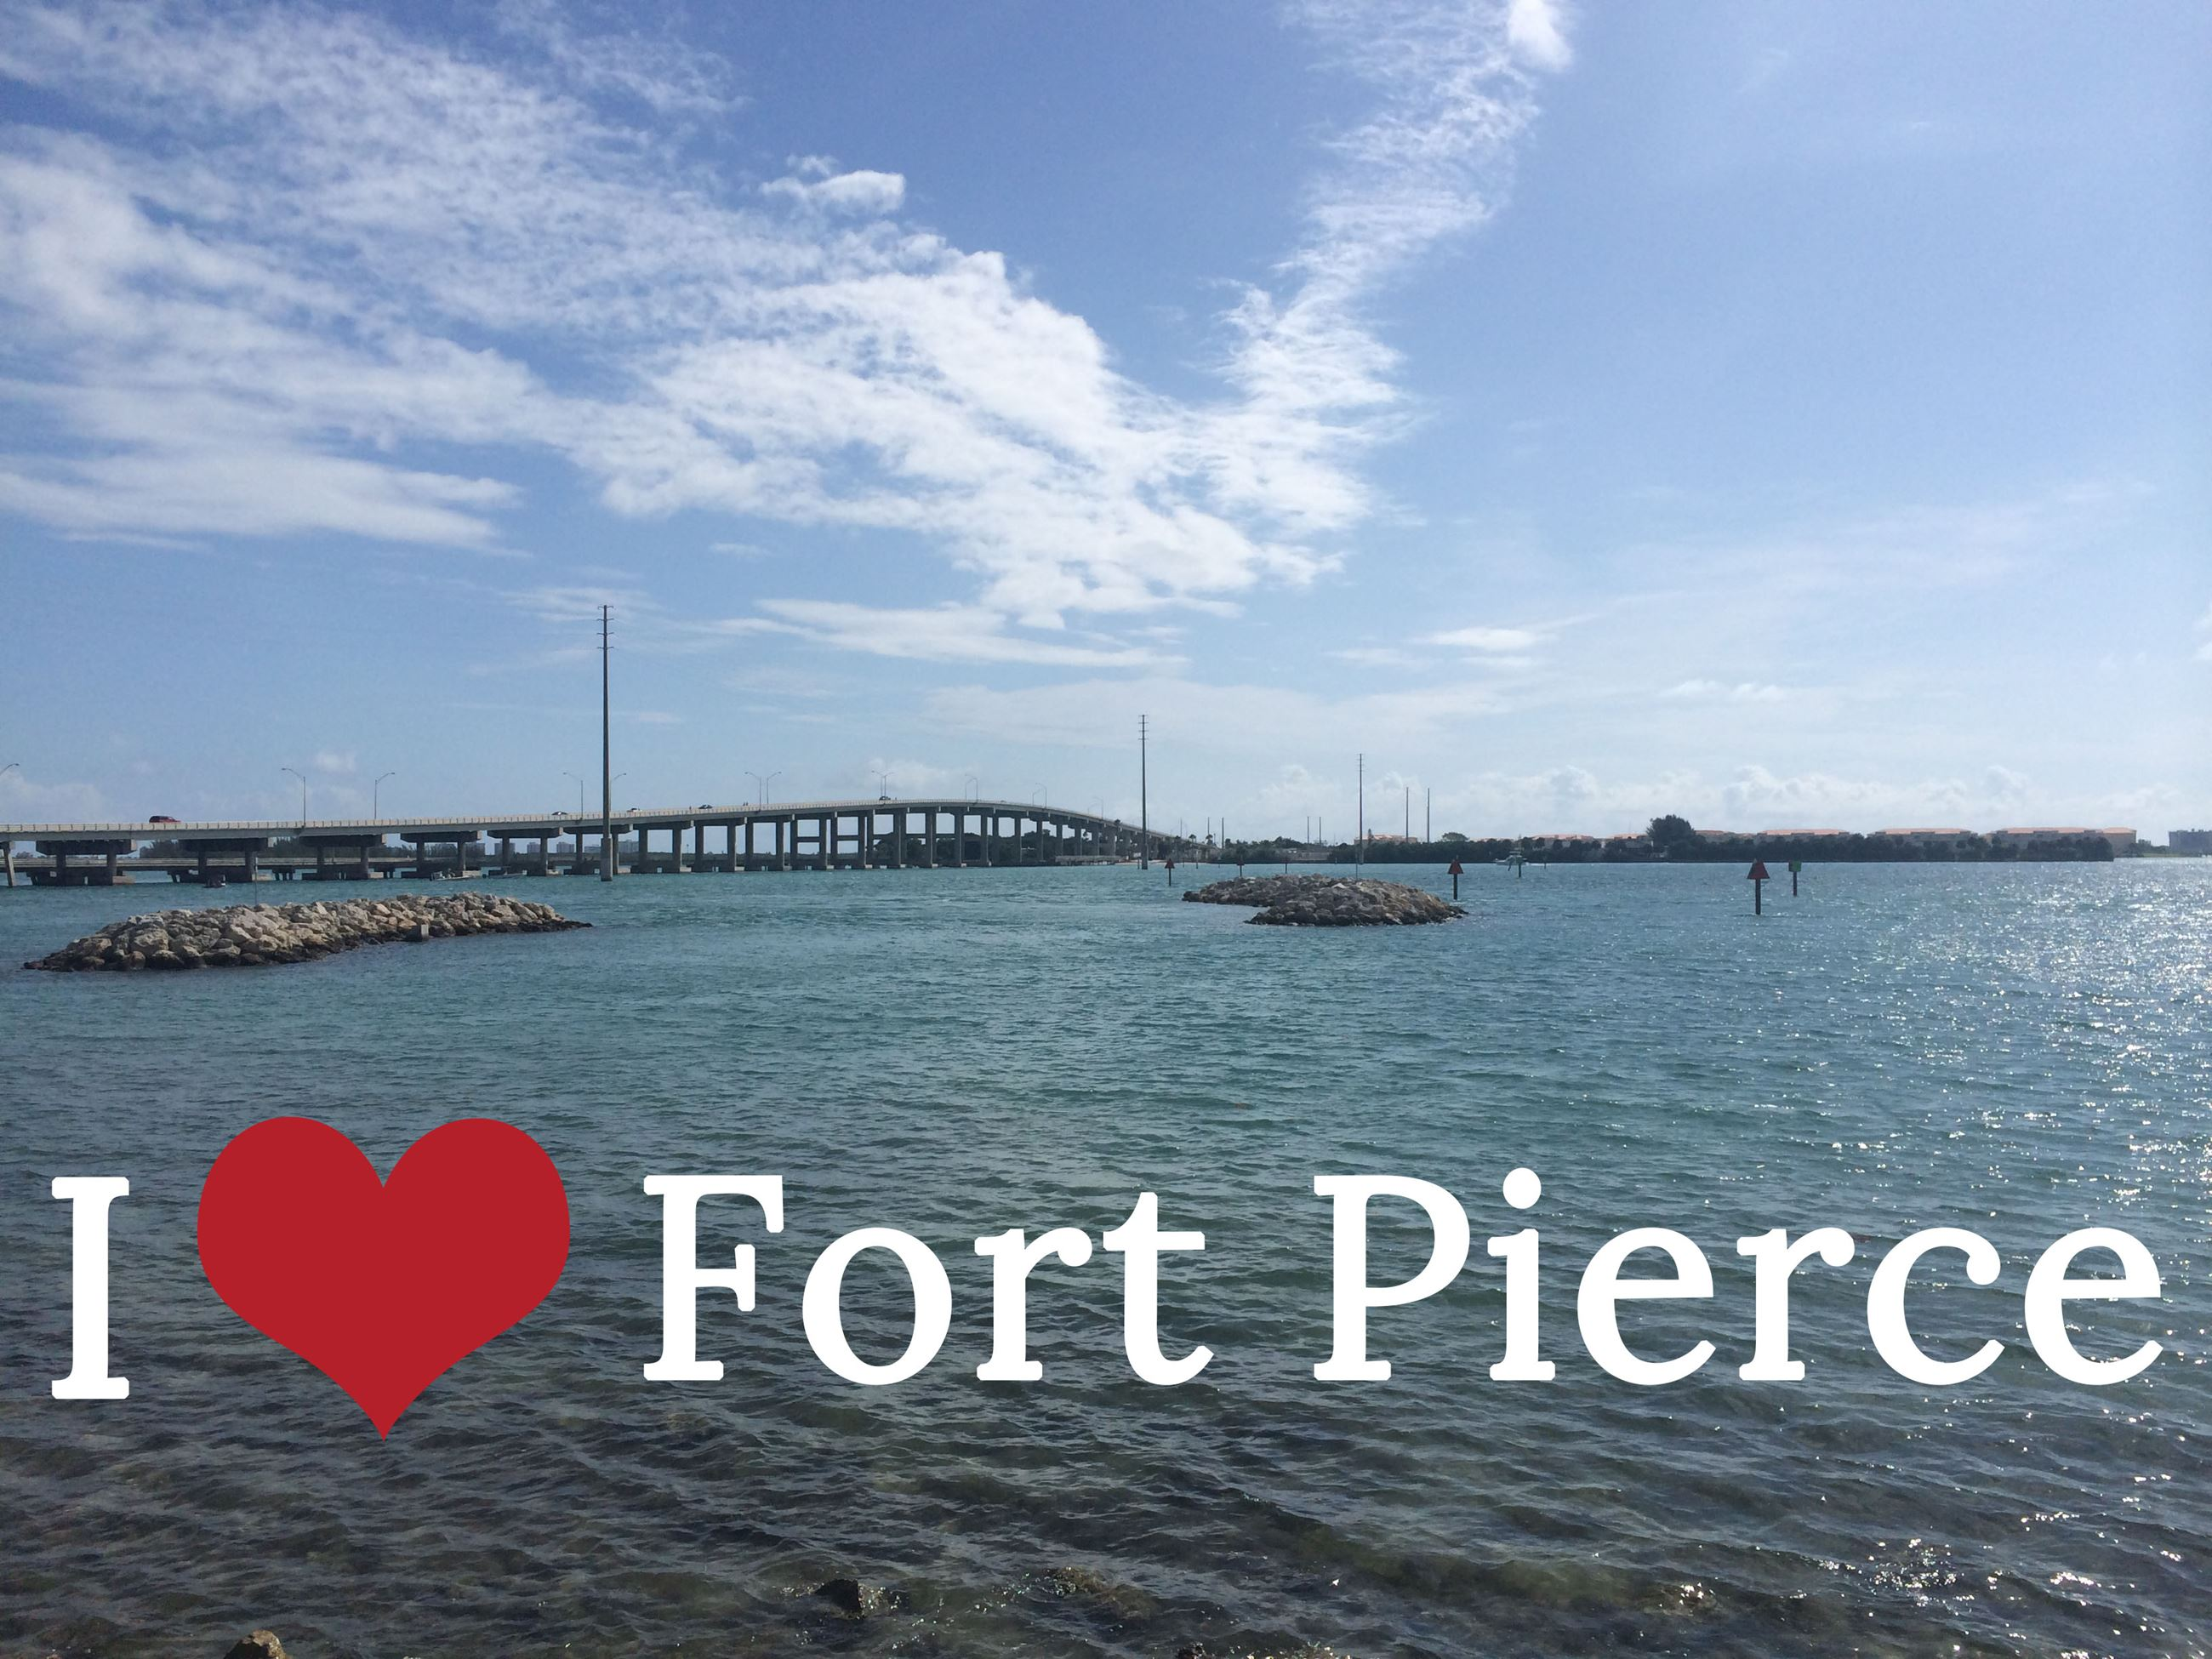 southbridge i love fort pierce